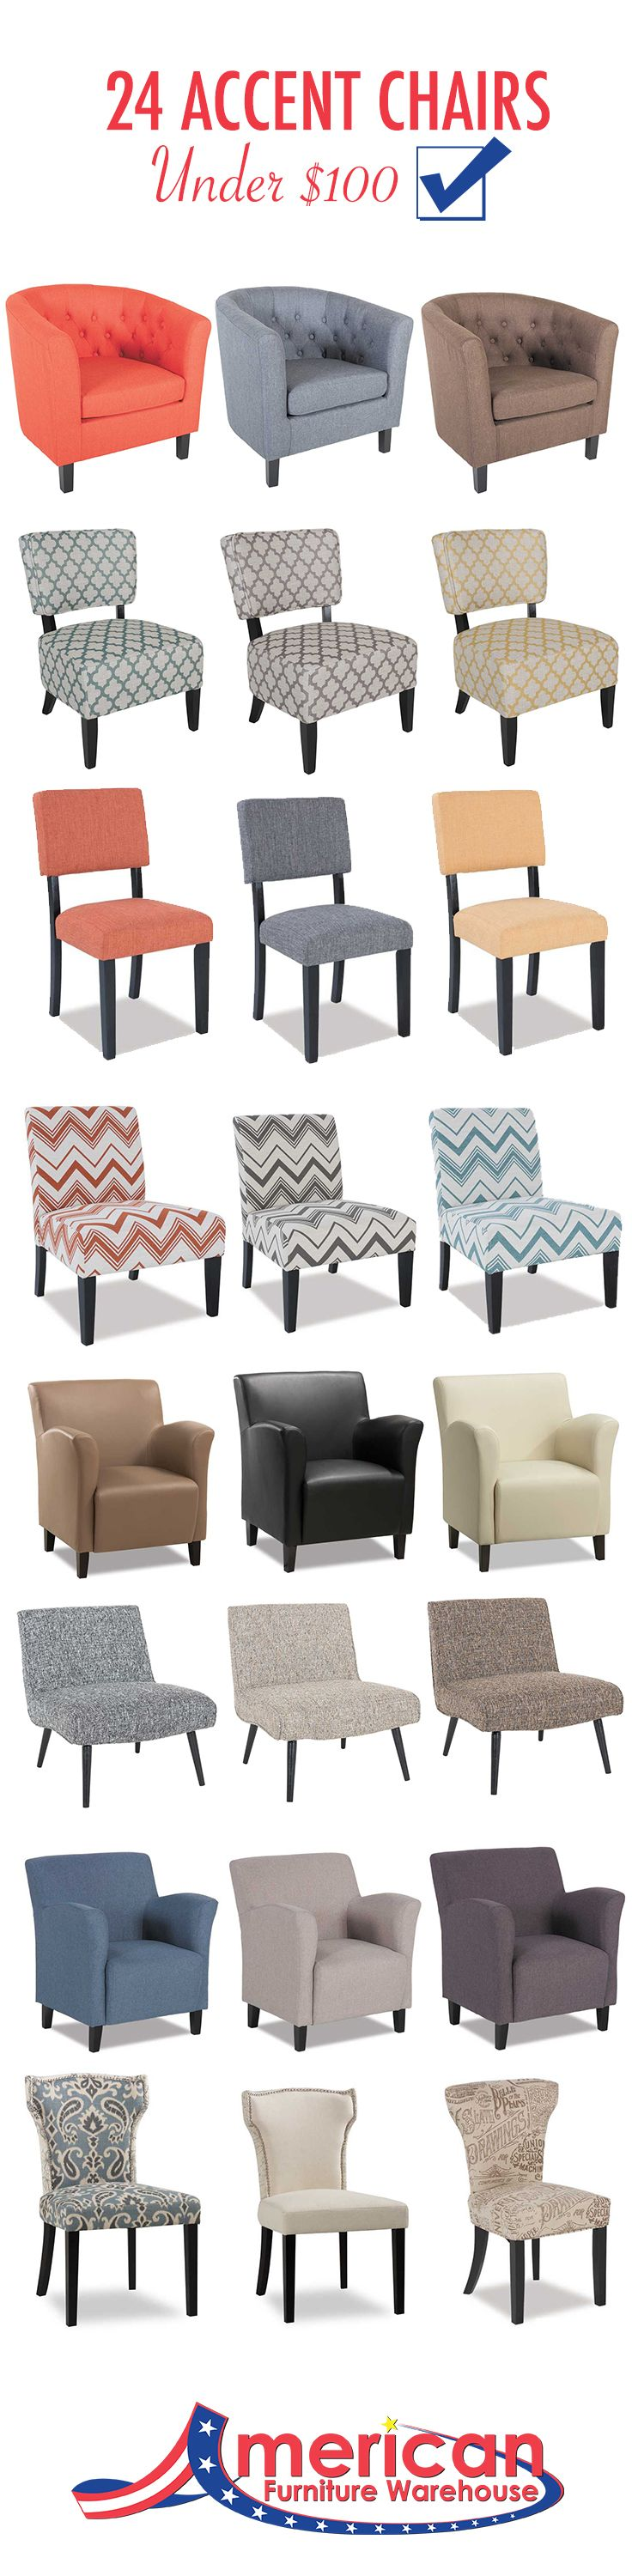 This is AWESOME! The ultimate list of affordable accent chairs, all under $100 and all available at the same store (American Furniture Warehouse)!